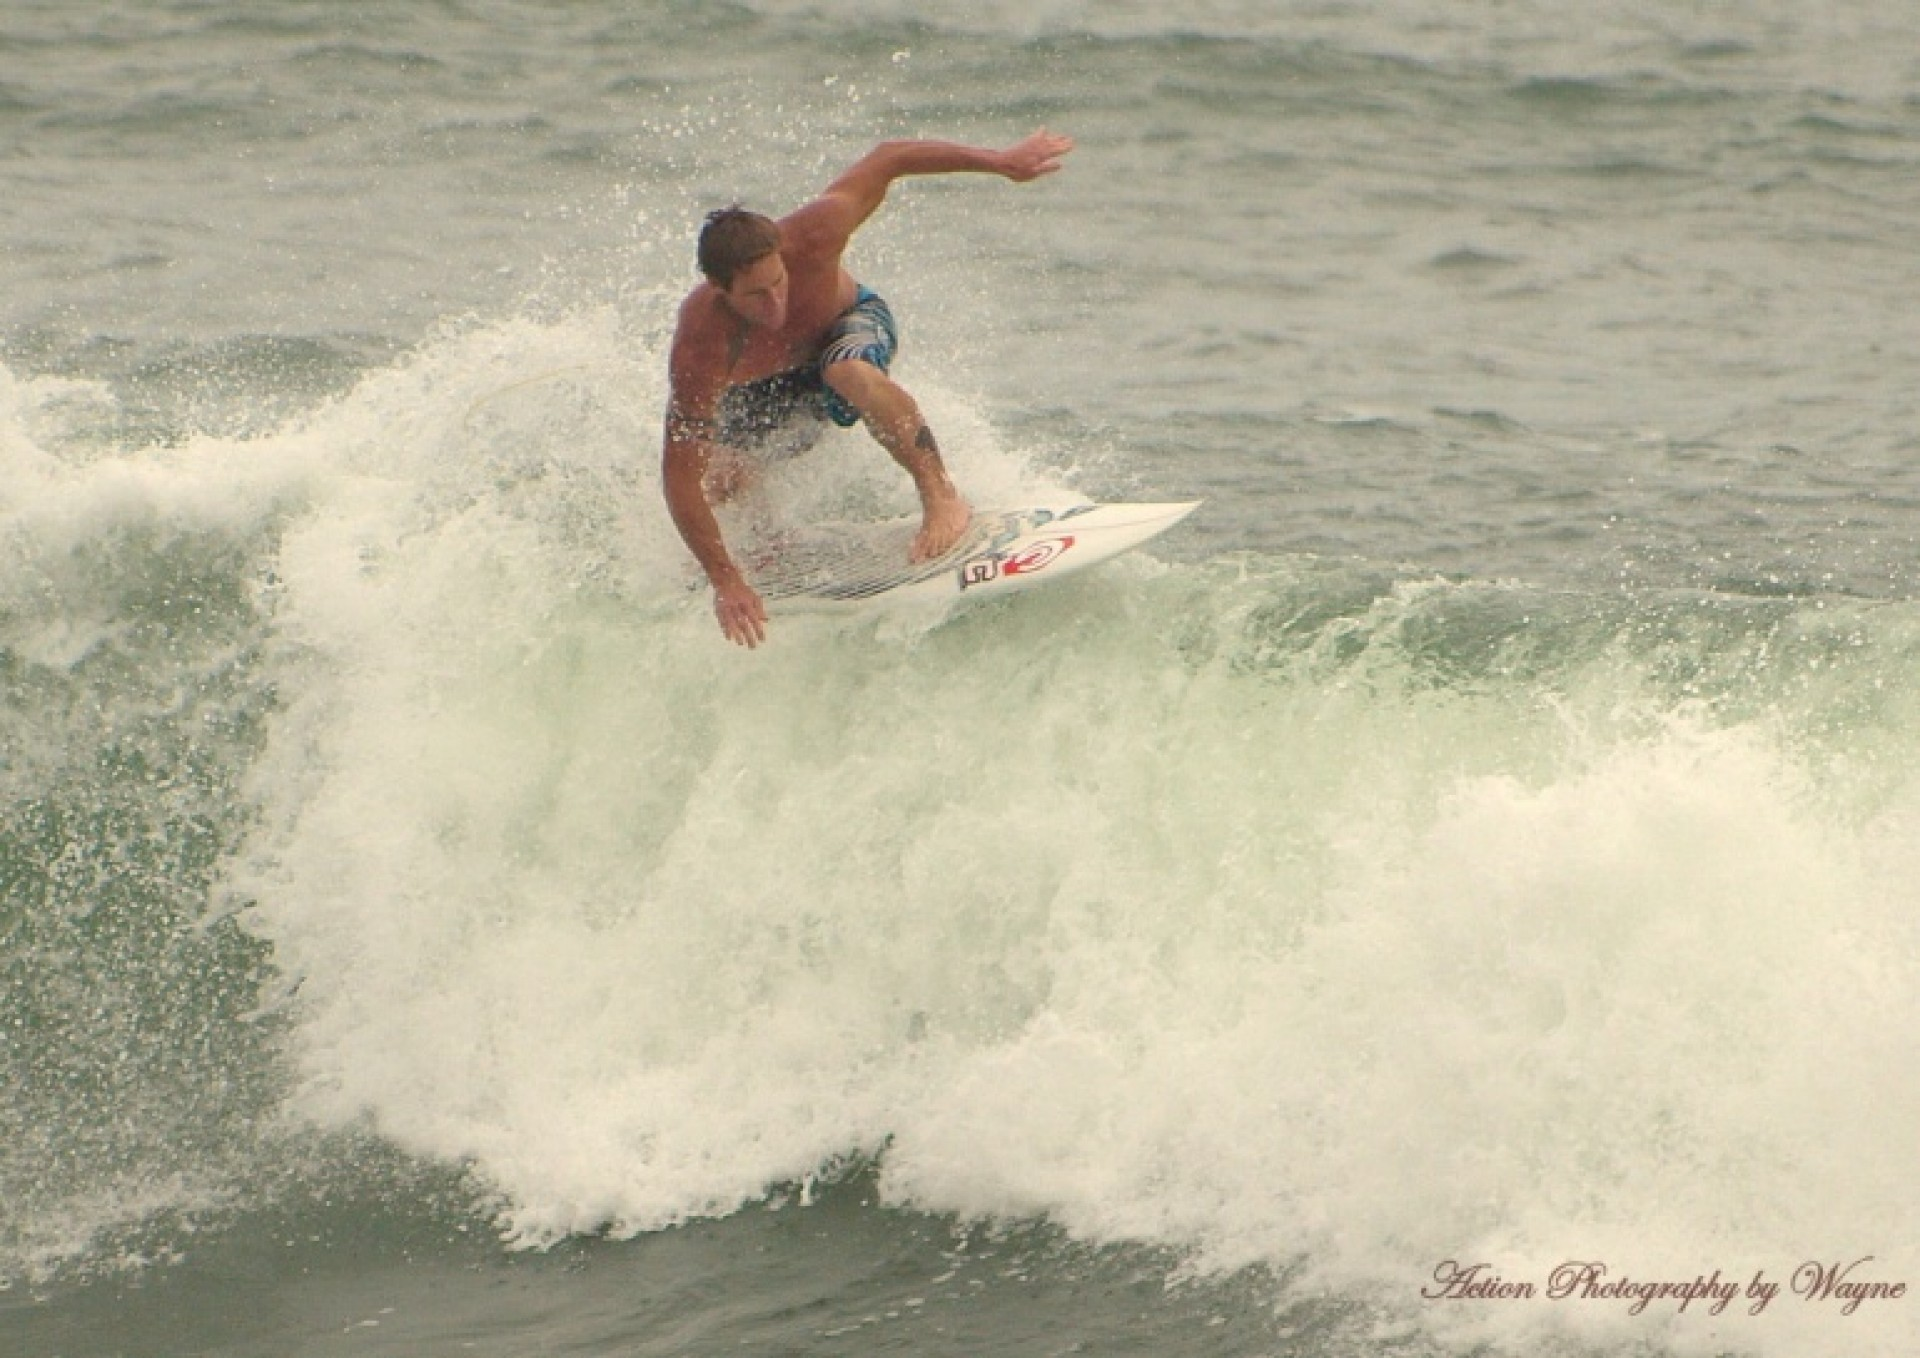 Action Photography 's photo of Warner Beach